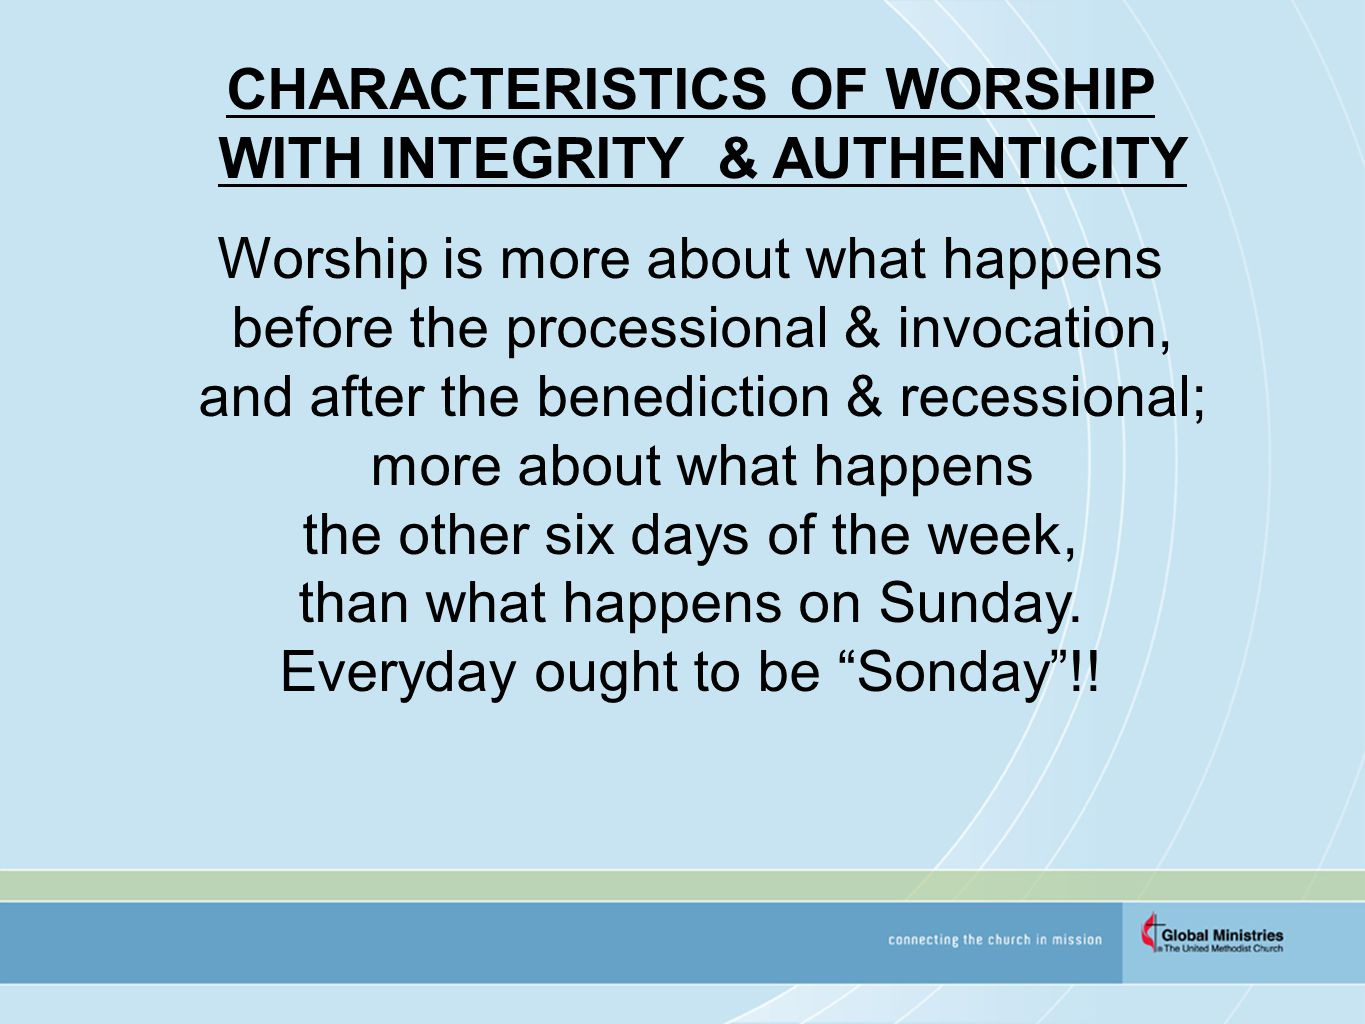 CHARACTERISTICS OF WORSHIP WITH INTEGRITY & AUTHENTICITY Worship is more about what happens before the processional & invocation, and after the benediction & recessional; more about what happens the other six days of the week, than what happens on Sunday.